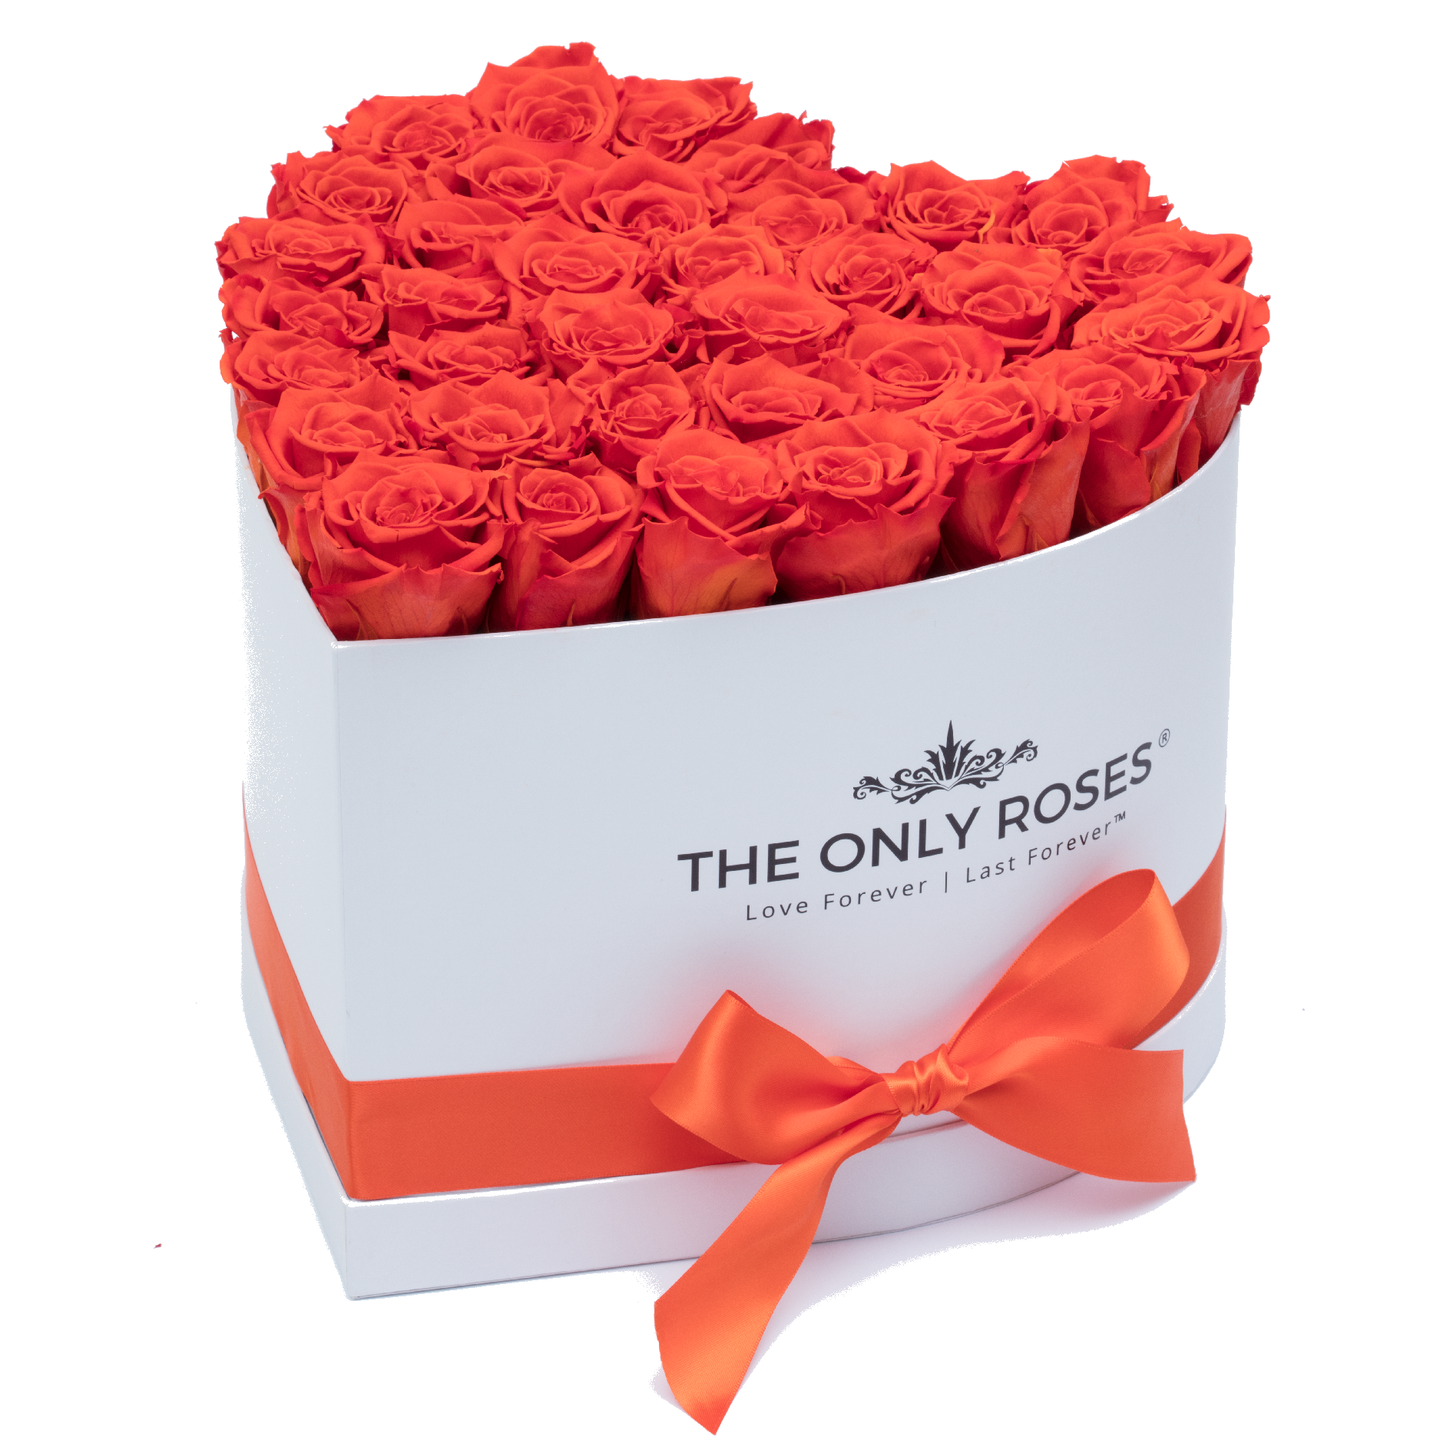 Orange Preserved Roses | Heart White Huggy Rose Box - The Only Roses